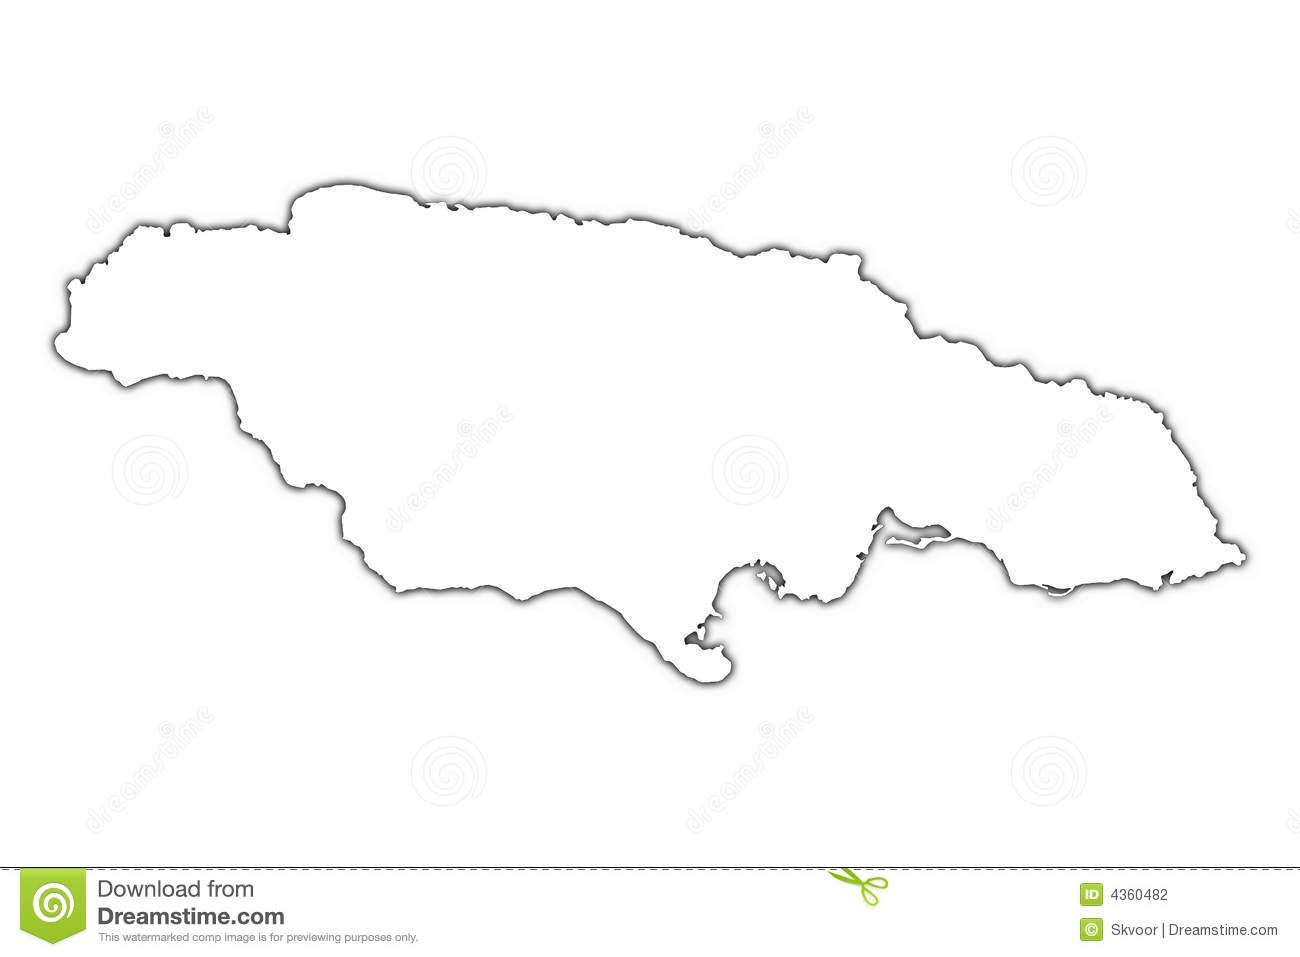 Jamaica Outline Map Stock Photography  Image 4360482  Kids